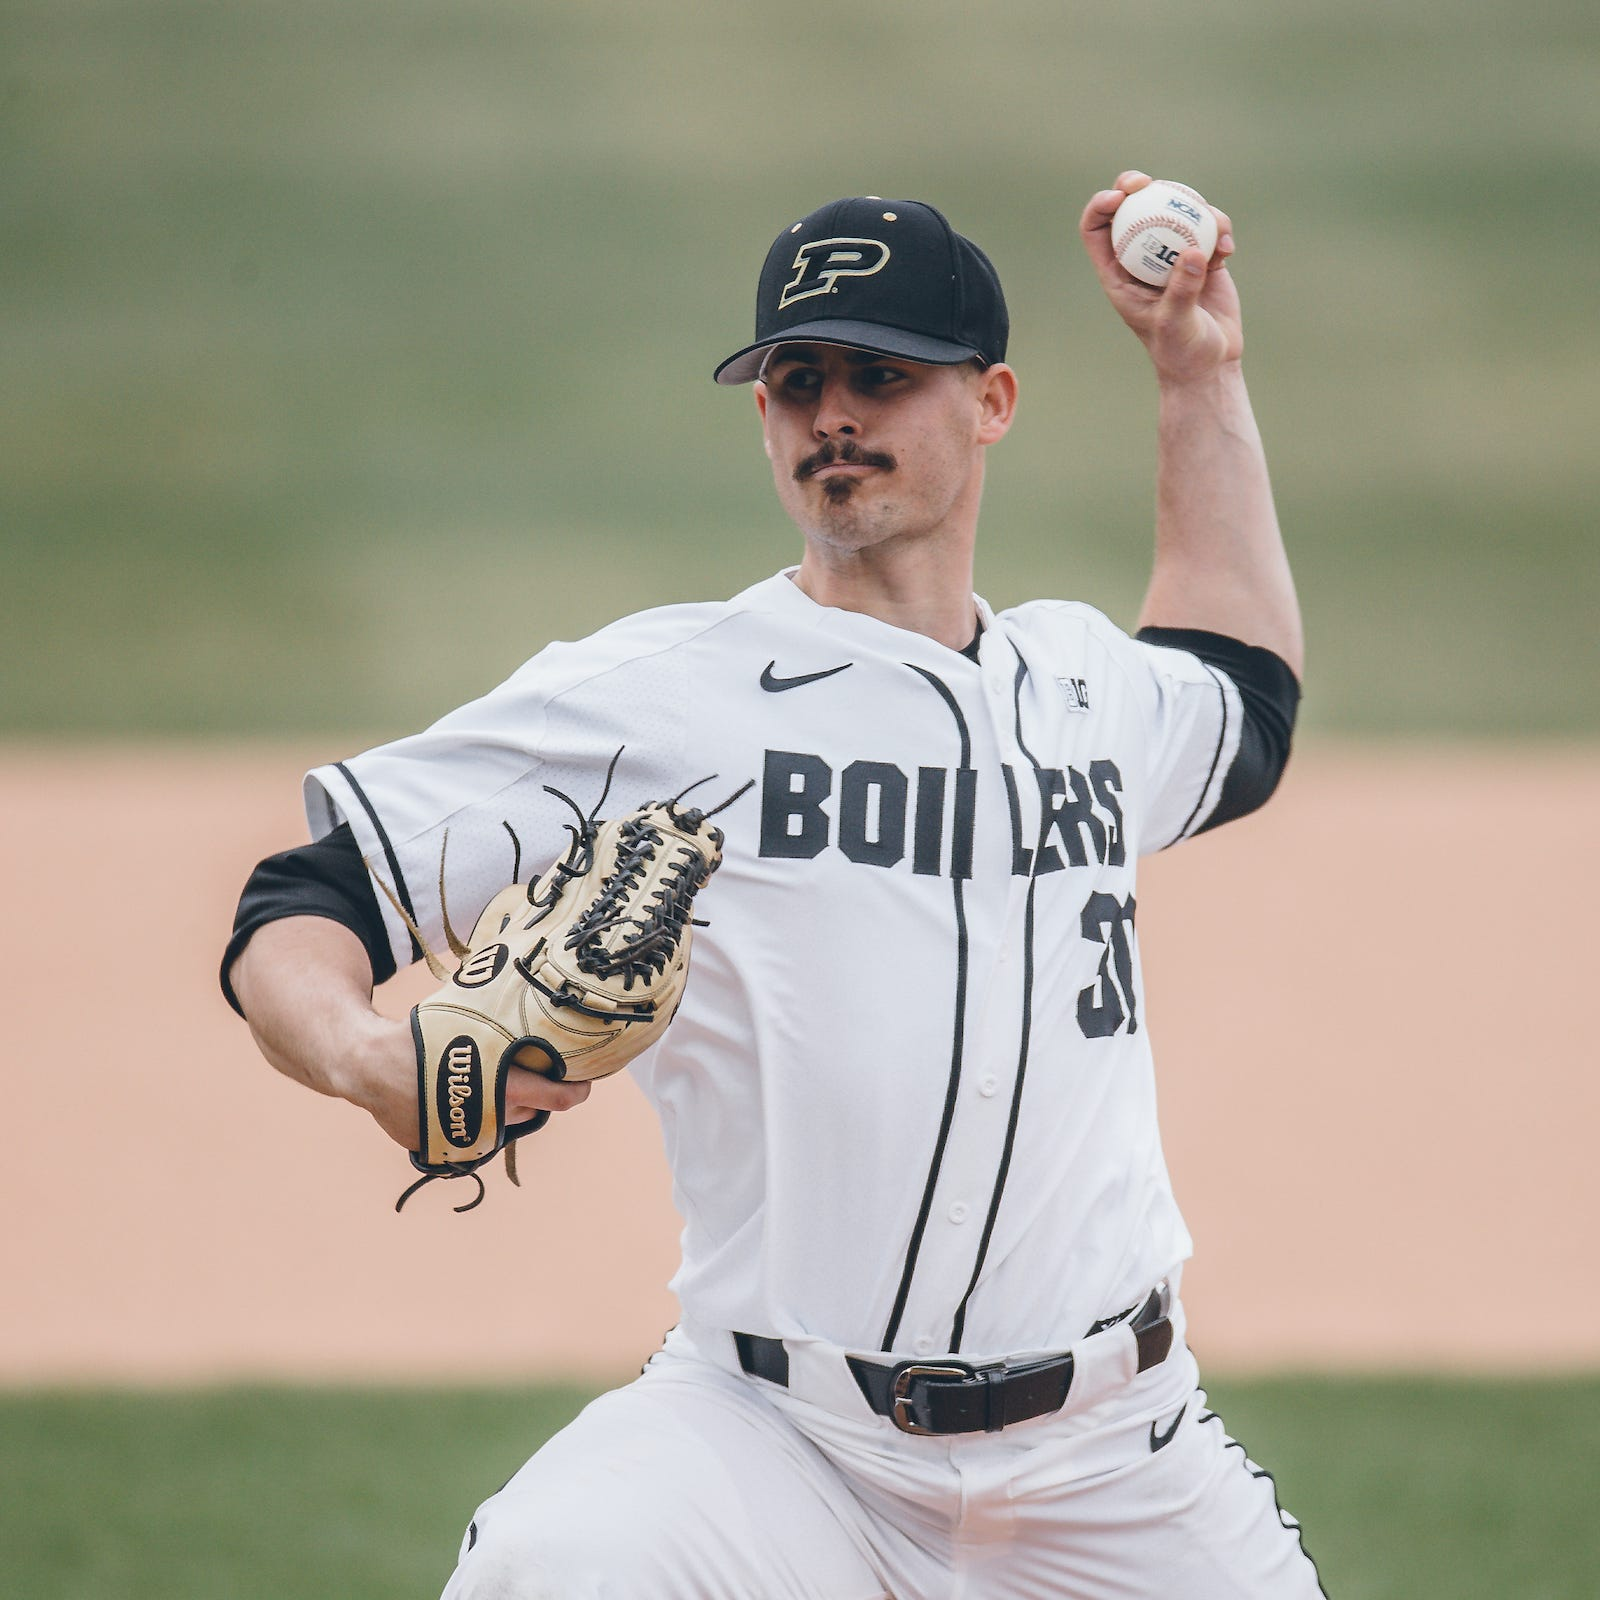 Purdue baseball's Patrick J. Smith seeing summer dedication pay off in starting rotation